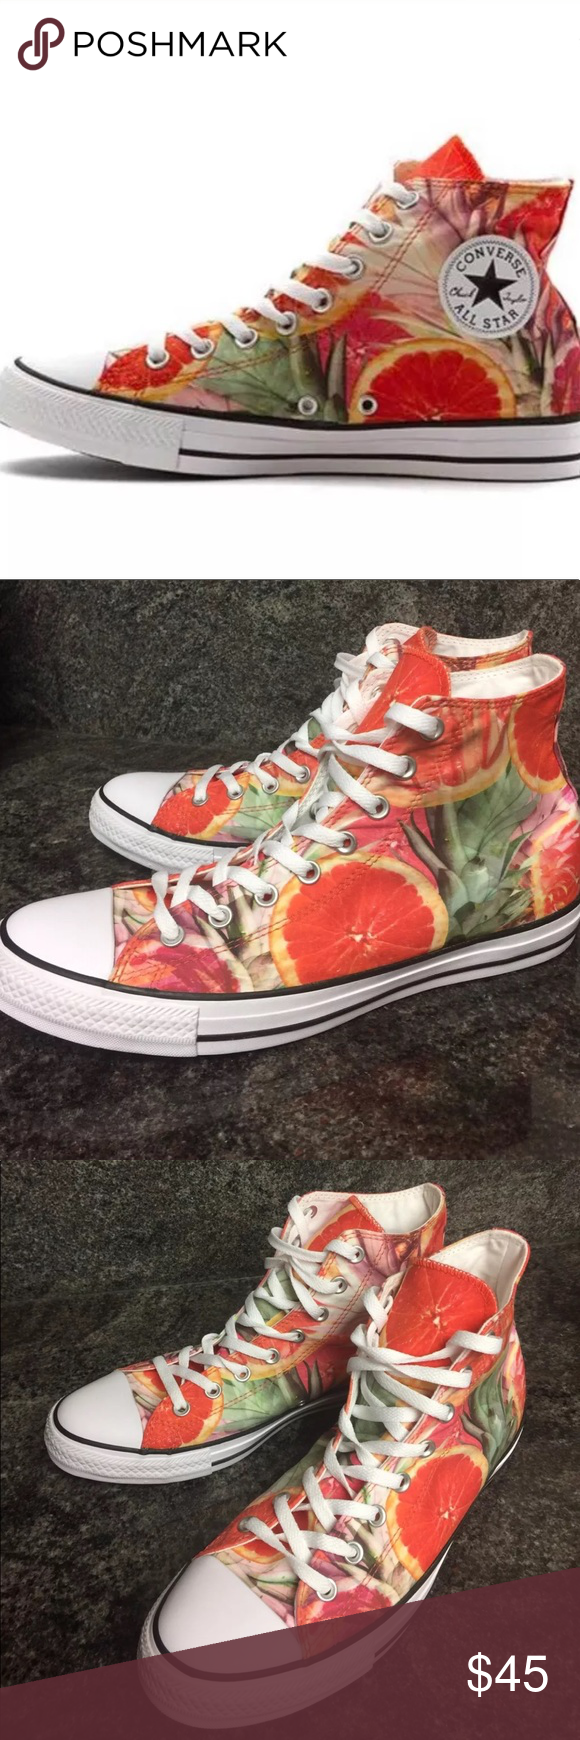 c131528c7047fc New Converse All Star Fruit Slice HI Top Shoes Converse Chuck Taylor All  Star Fruit Slice